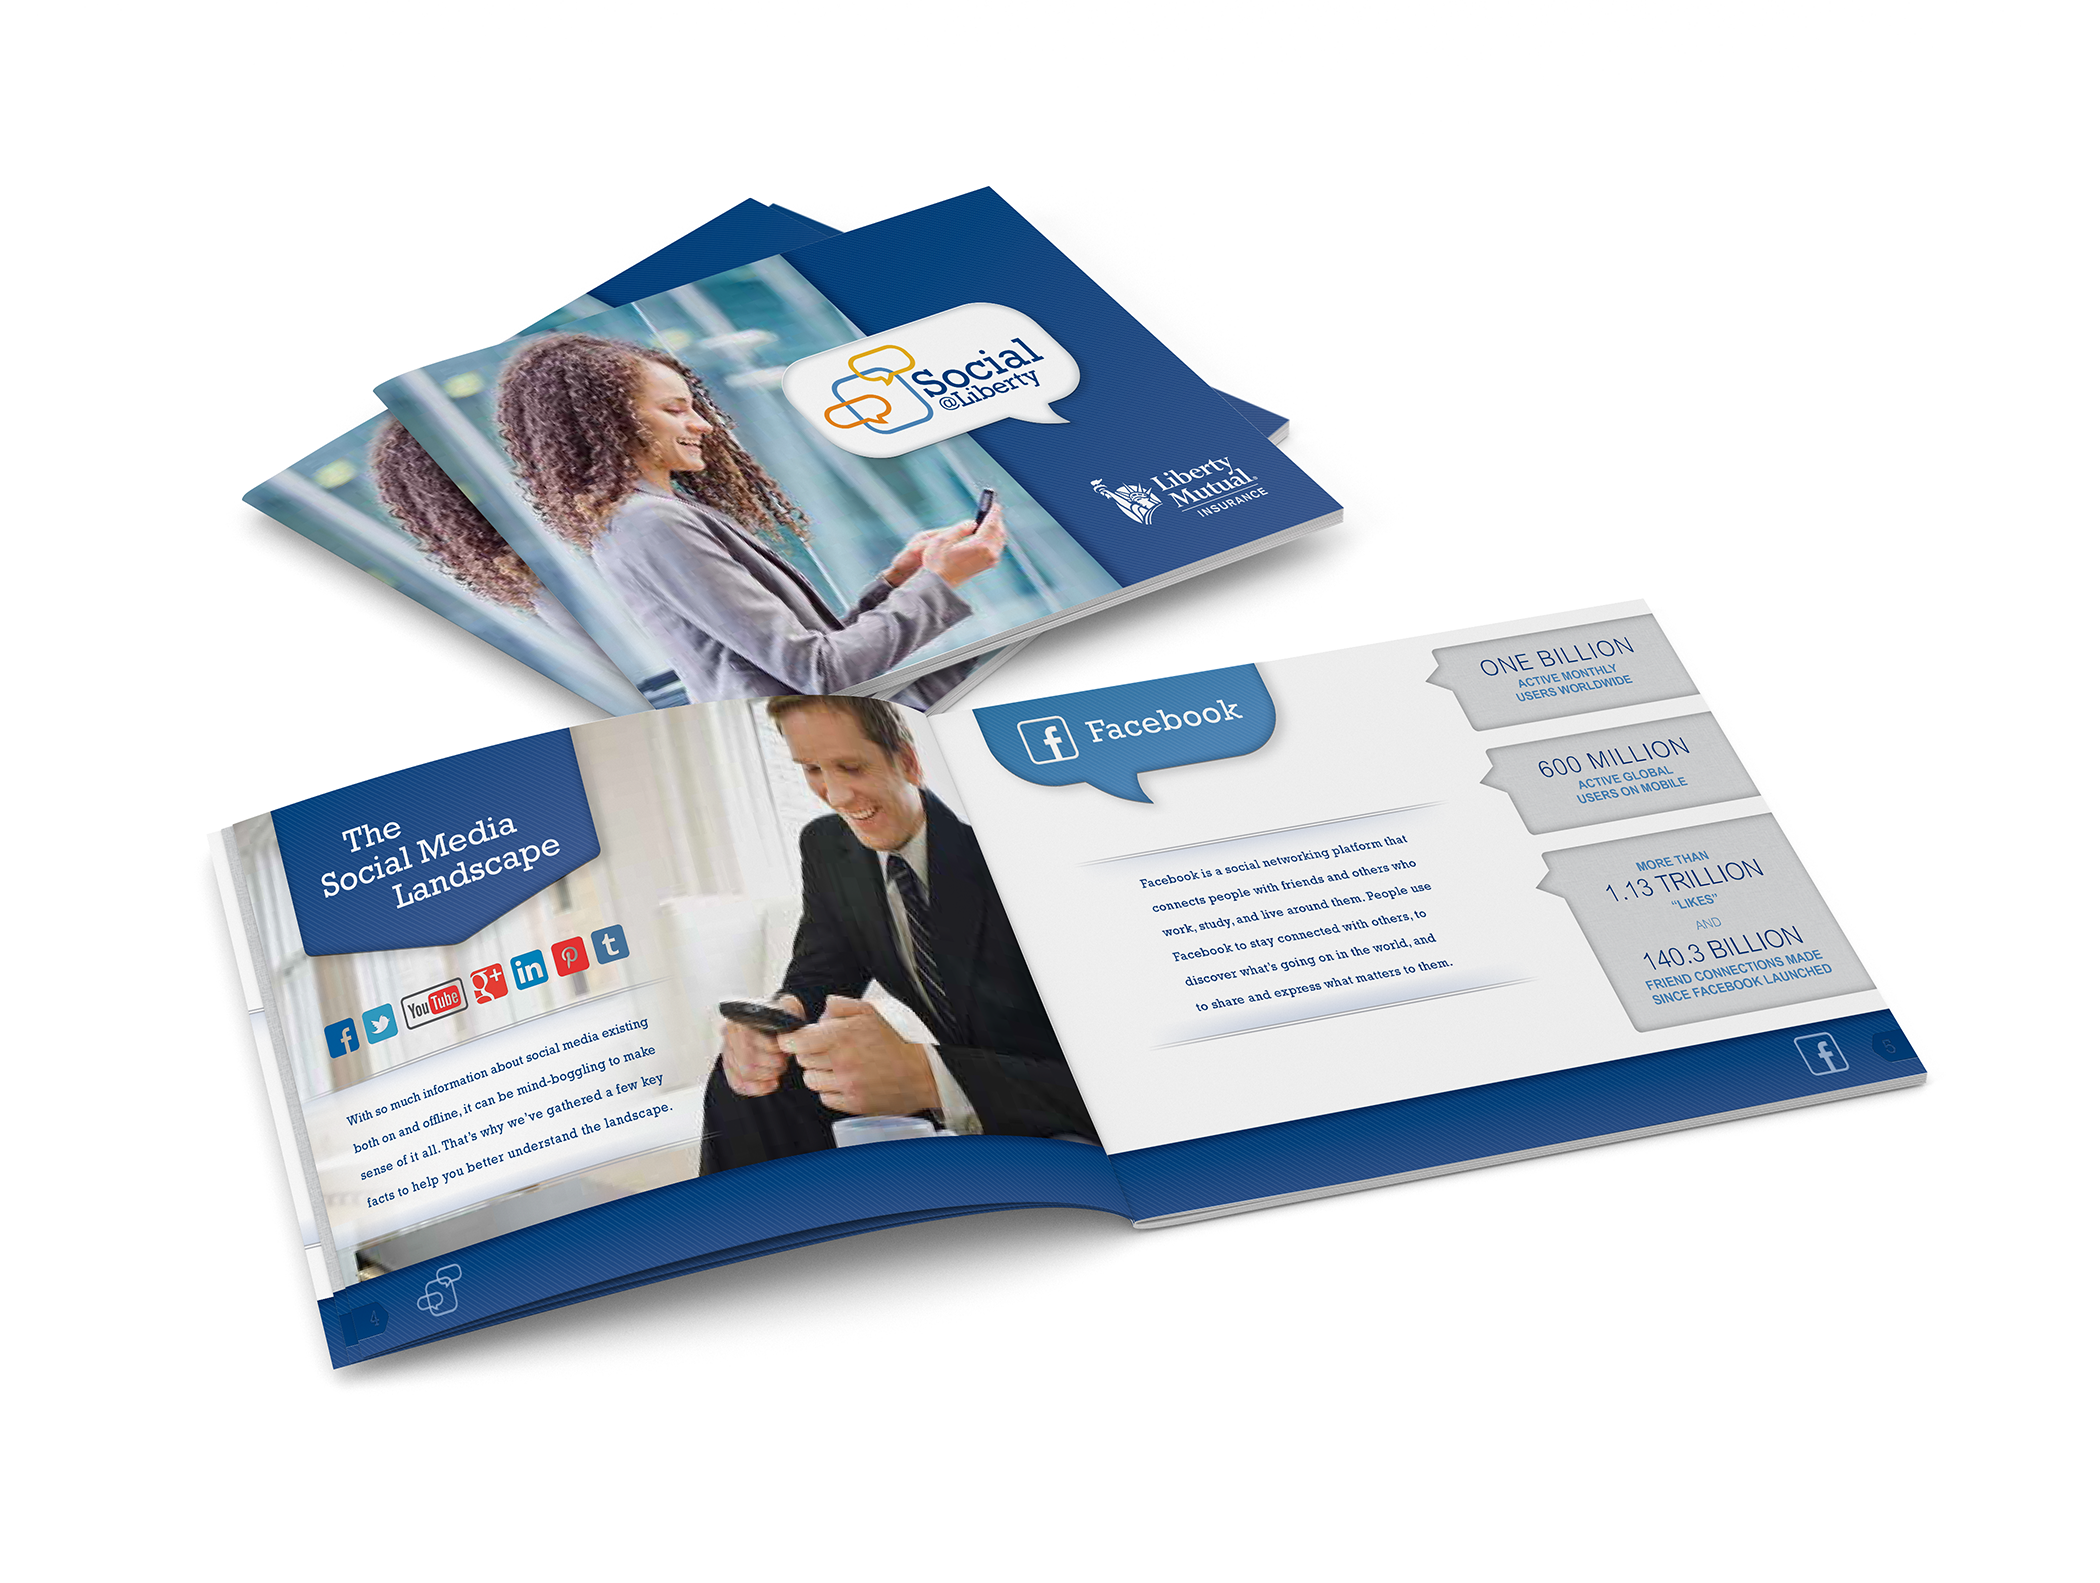 Corporate collateral designed for Liberty Mutual.